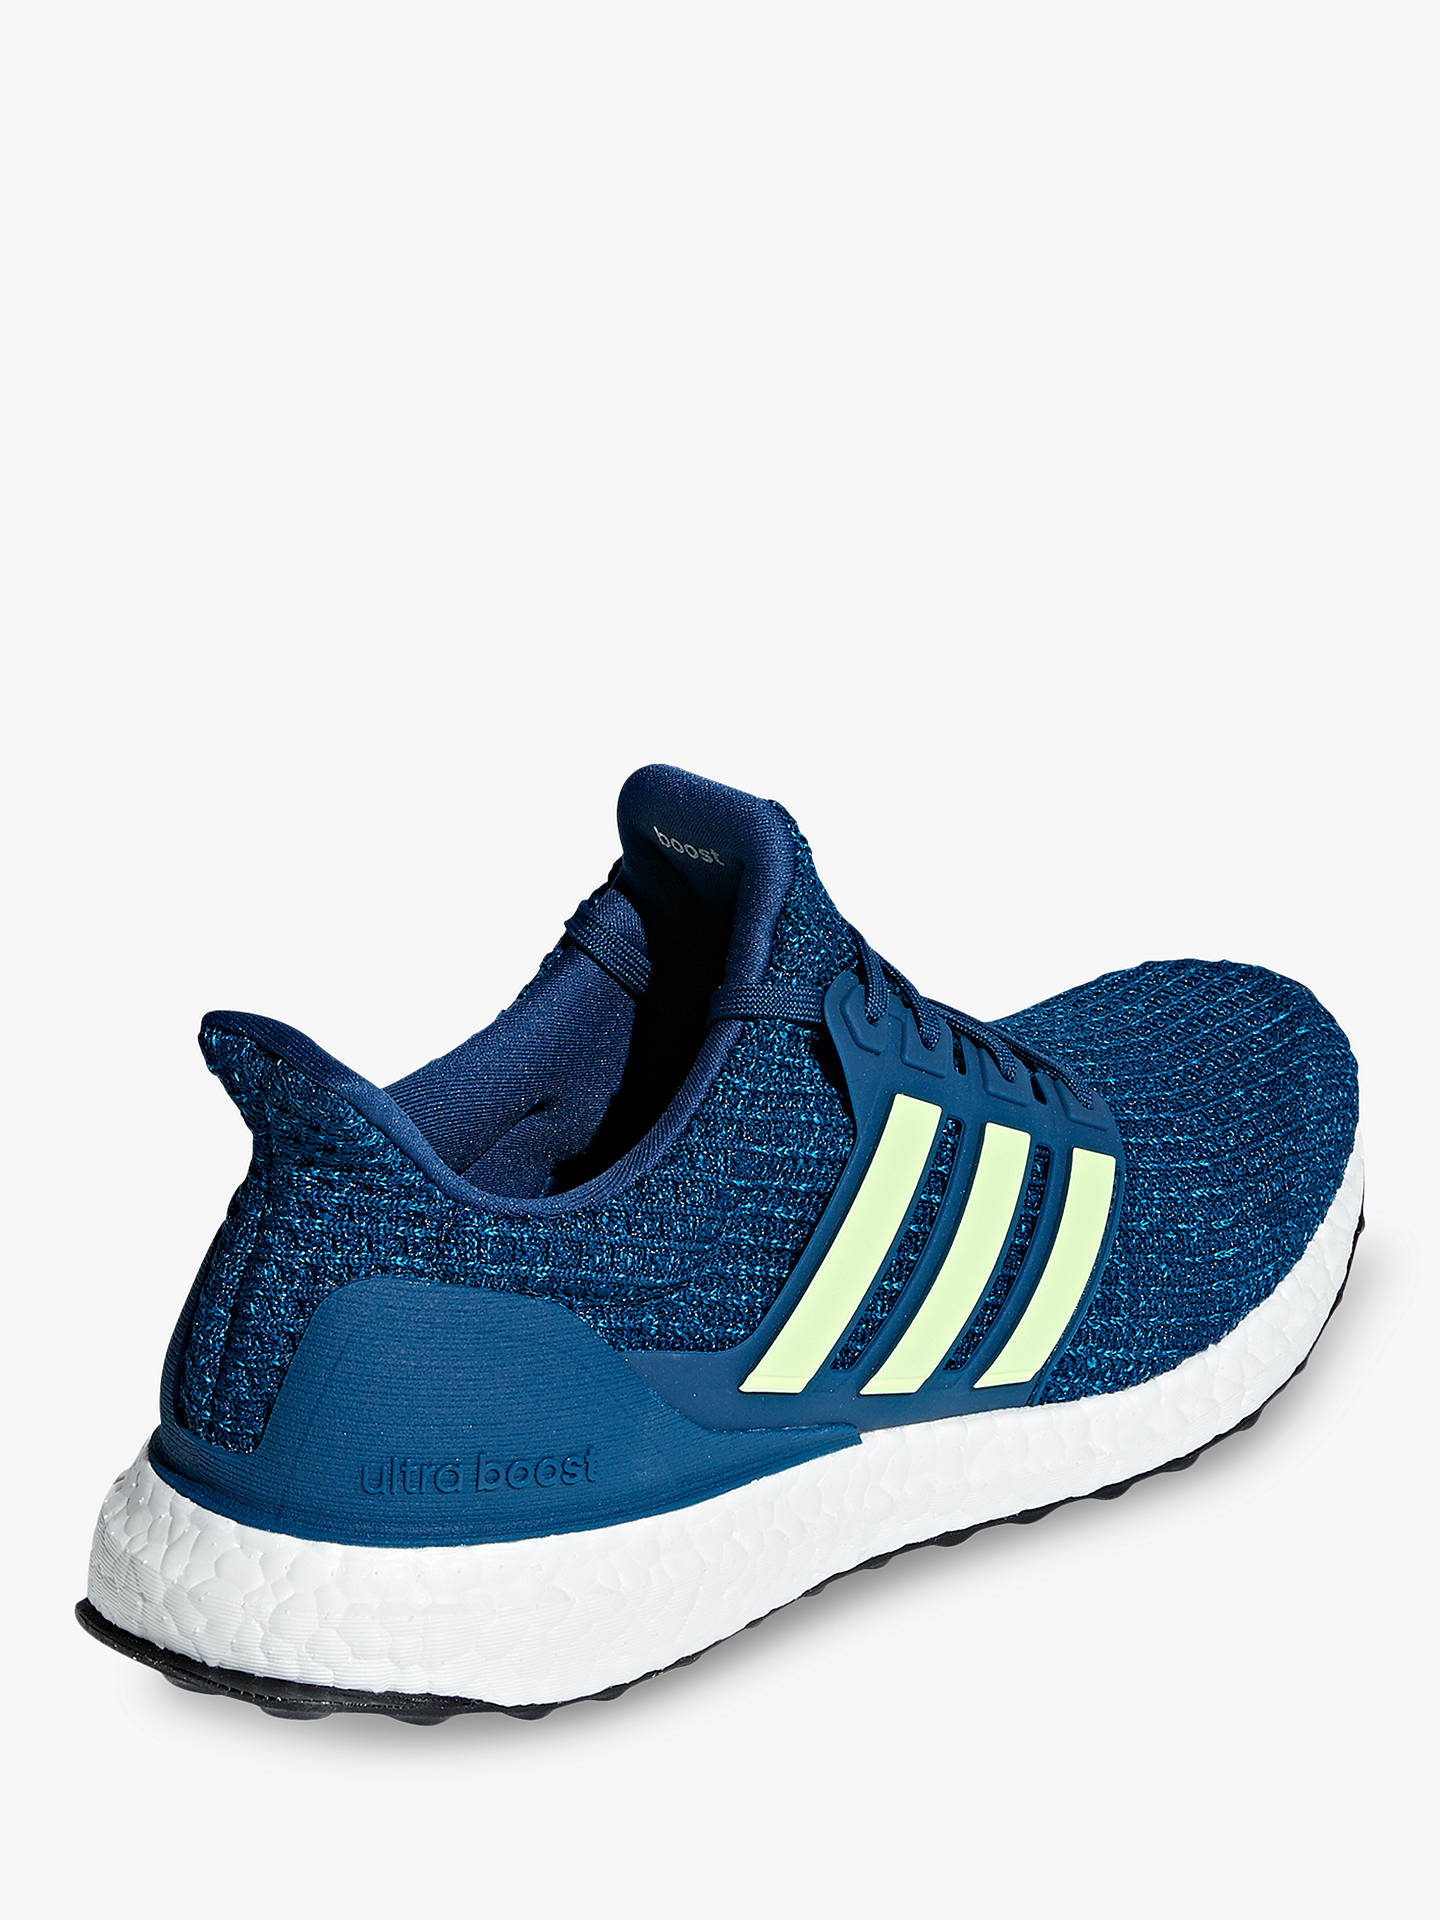 6b69d989e01b9 adidas UltraBOOST Men s Running Shoes at John Lewis   Partners